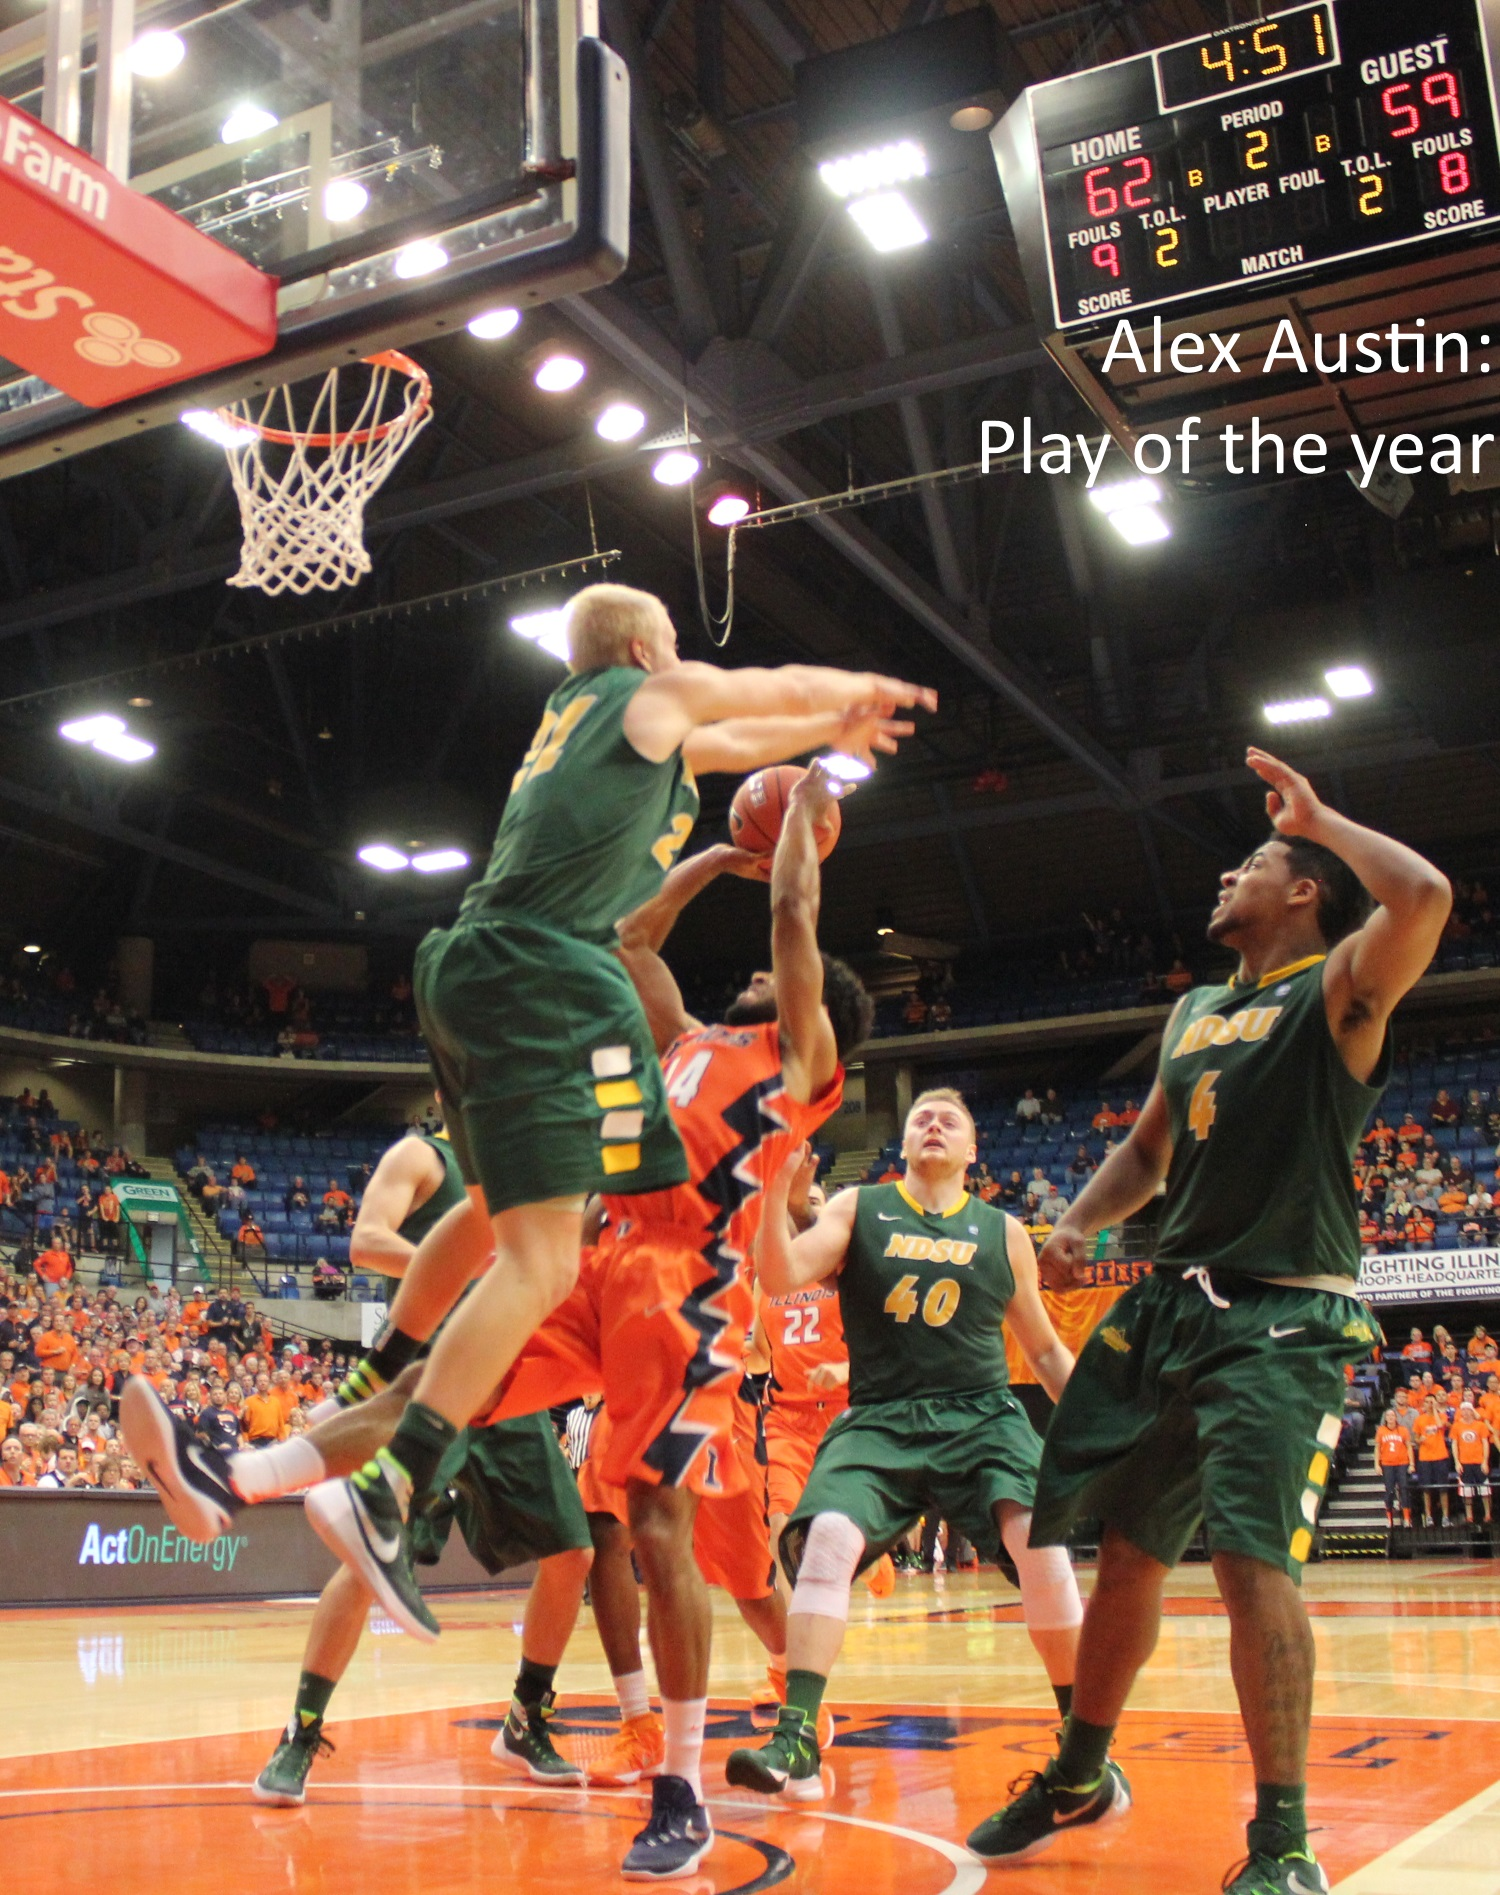 Alex Austin - play of the year